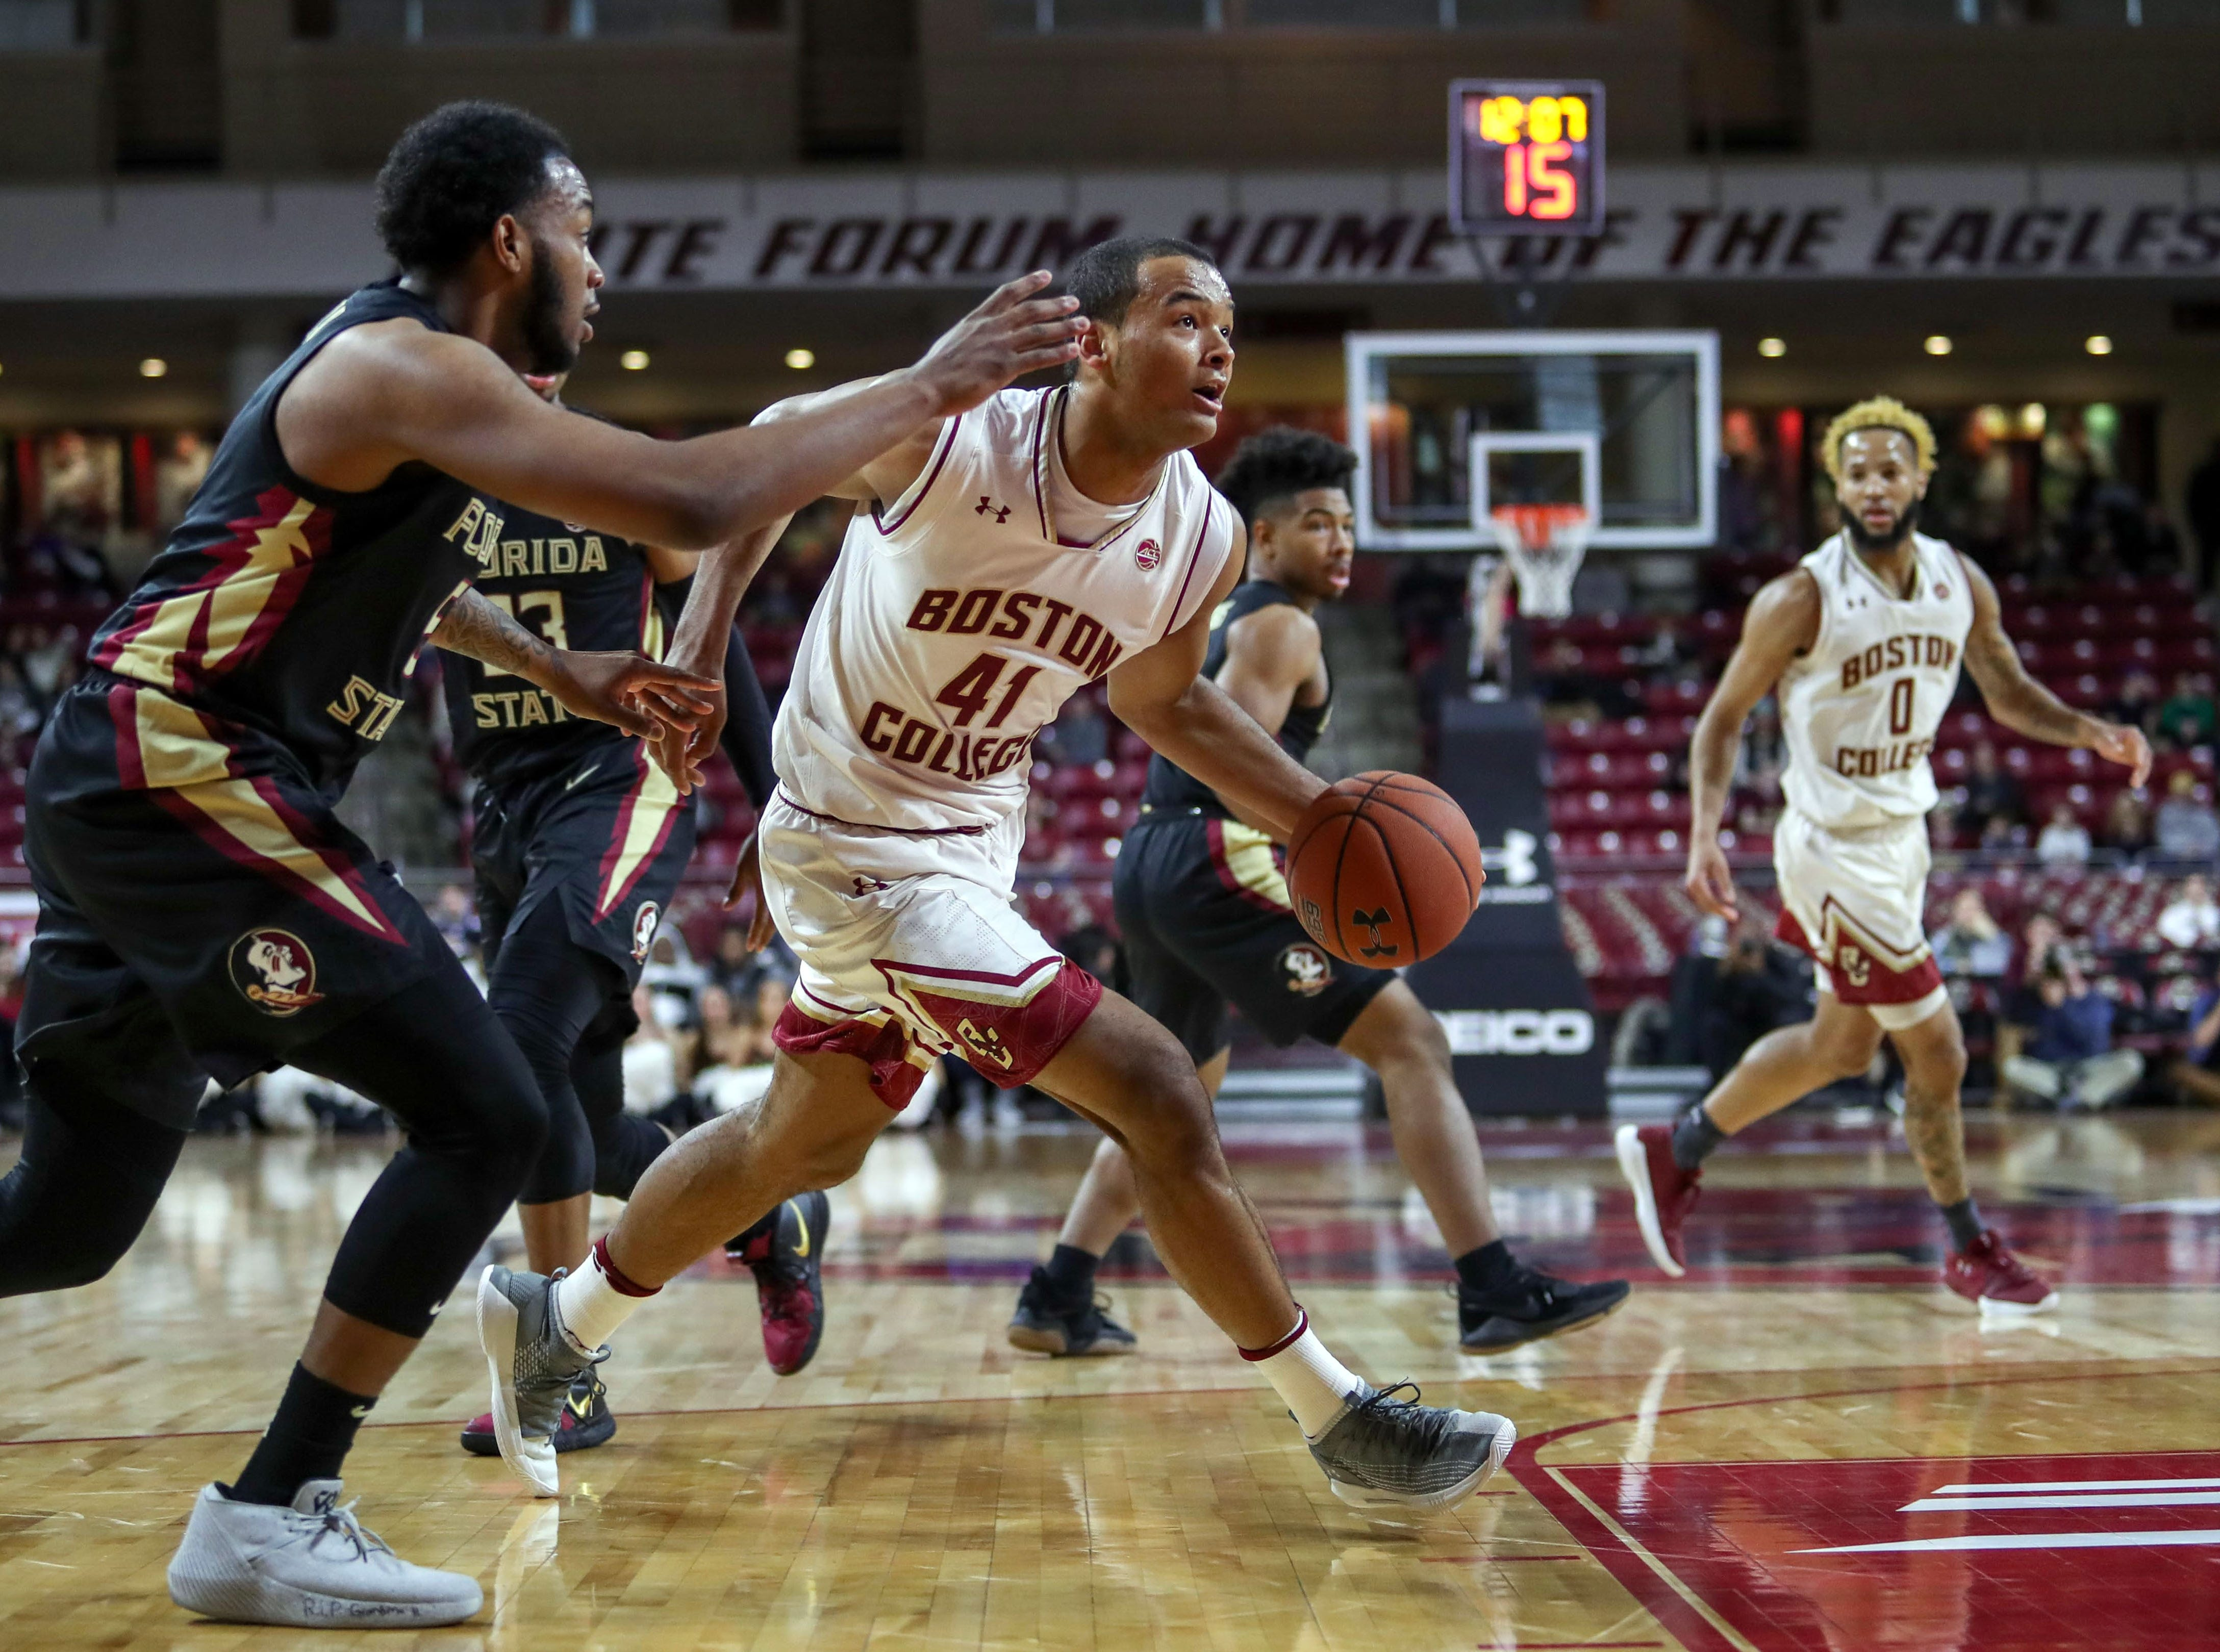 Jan 20, 2019; Chestnut Hill, MA, USA; Boston College Eagles forward Steffon Mitchell (41) drives to the basket against the Florida State Seminoles during the first half at Conte Forum. Mandatory Credit: Paul Rutherford-USA TODAY Sports